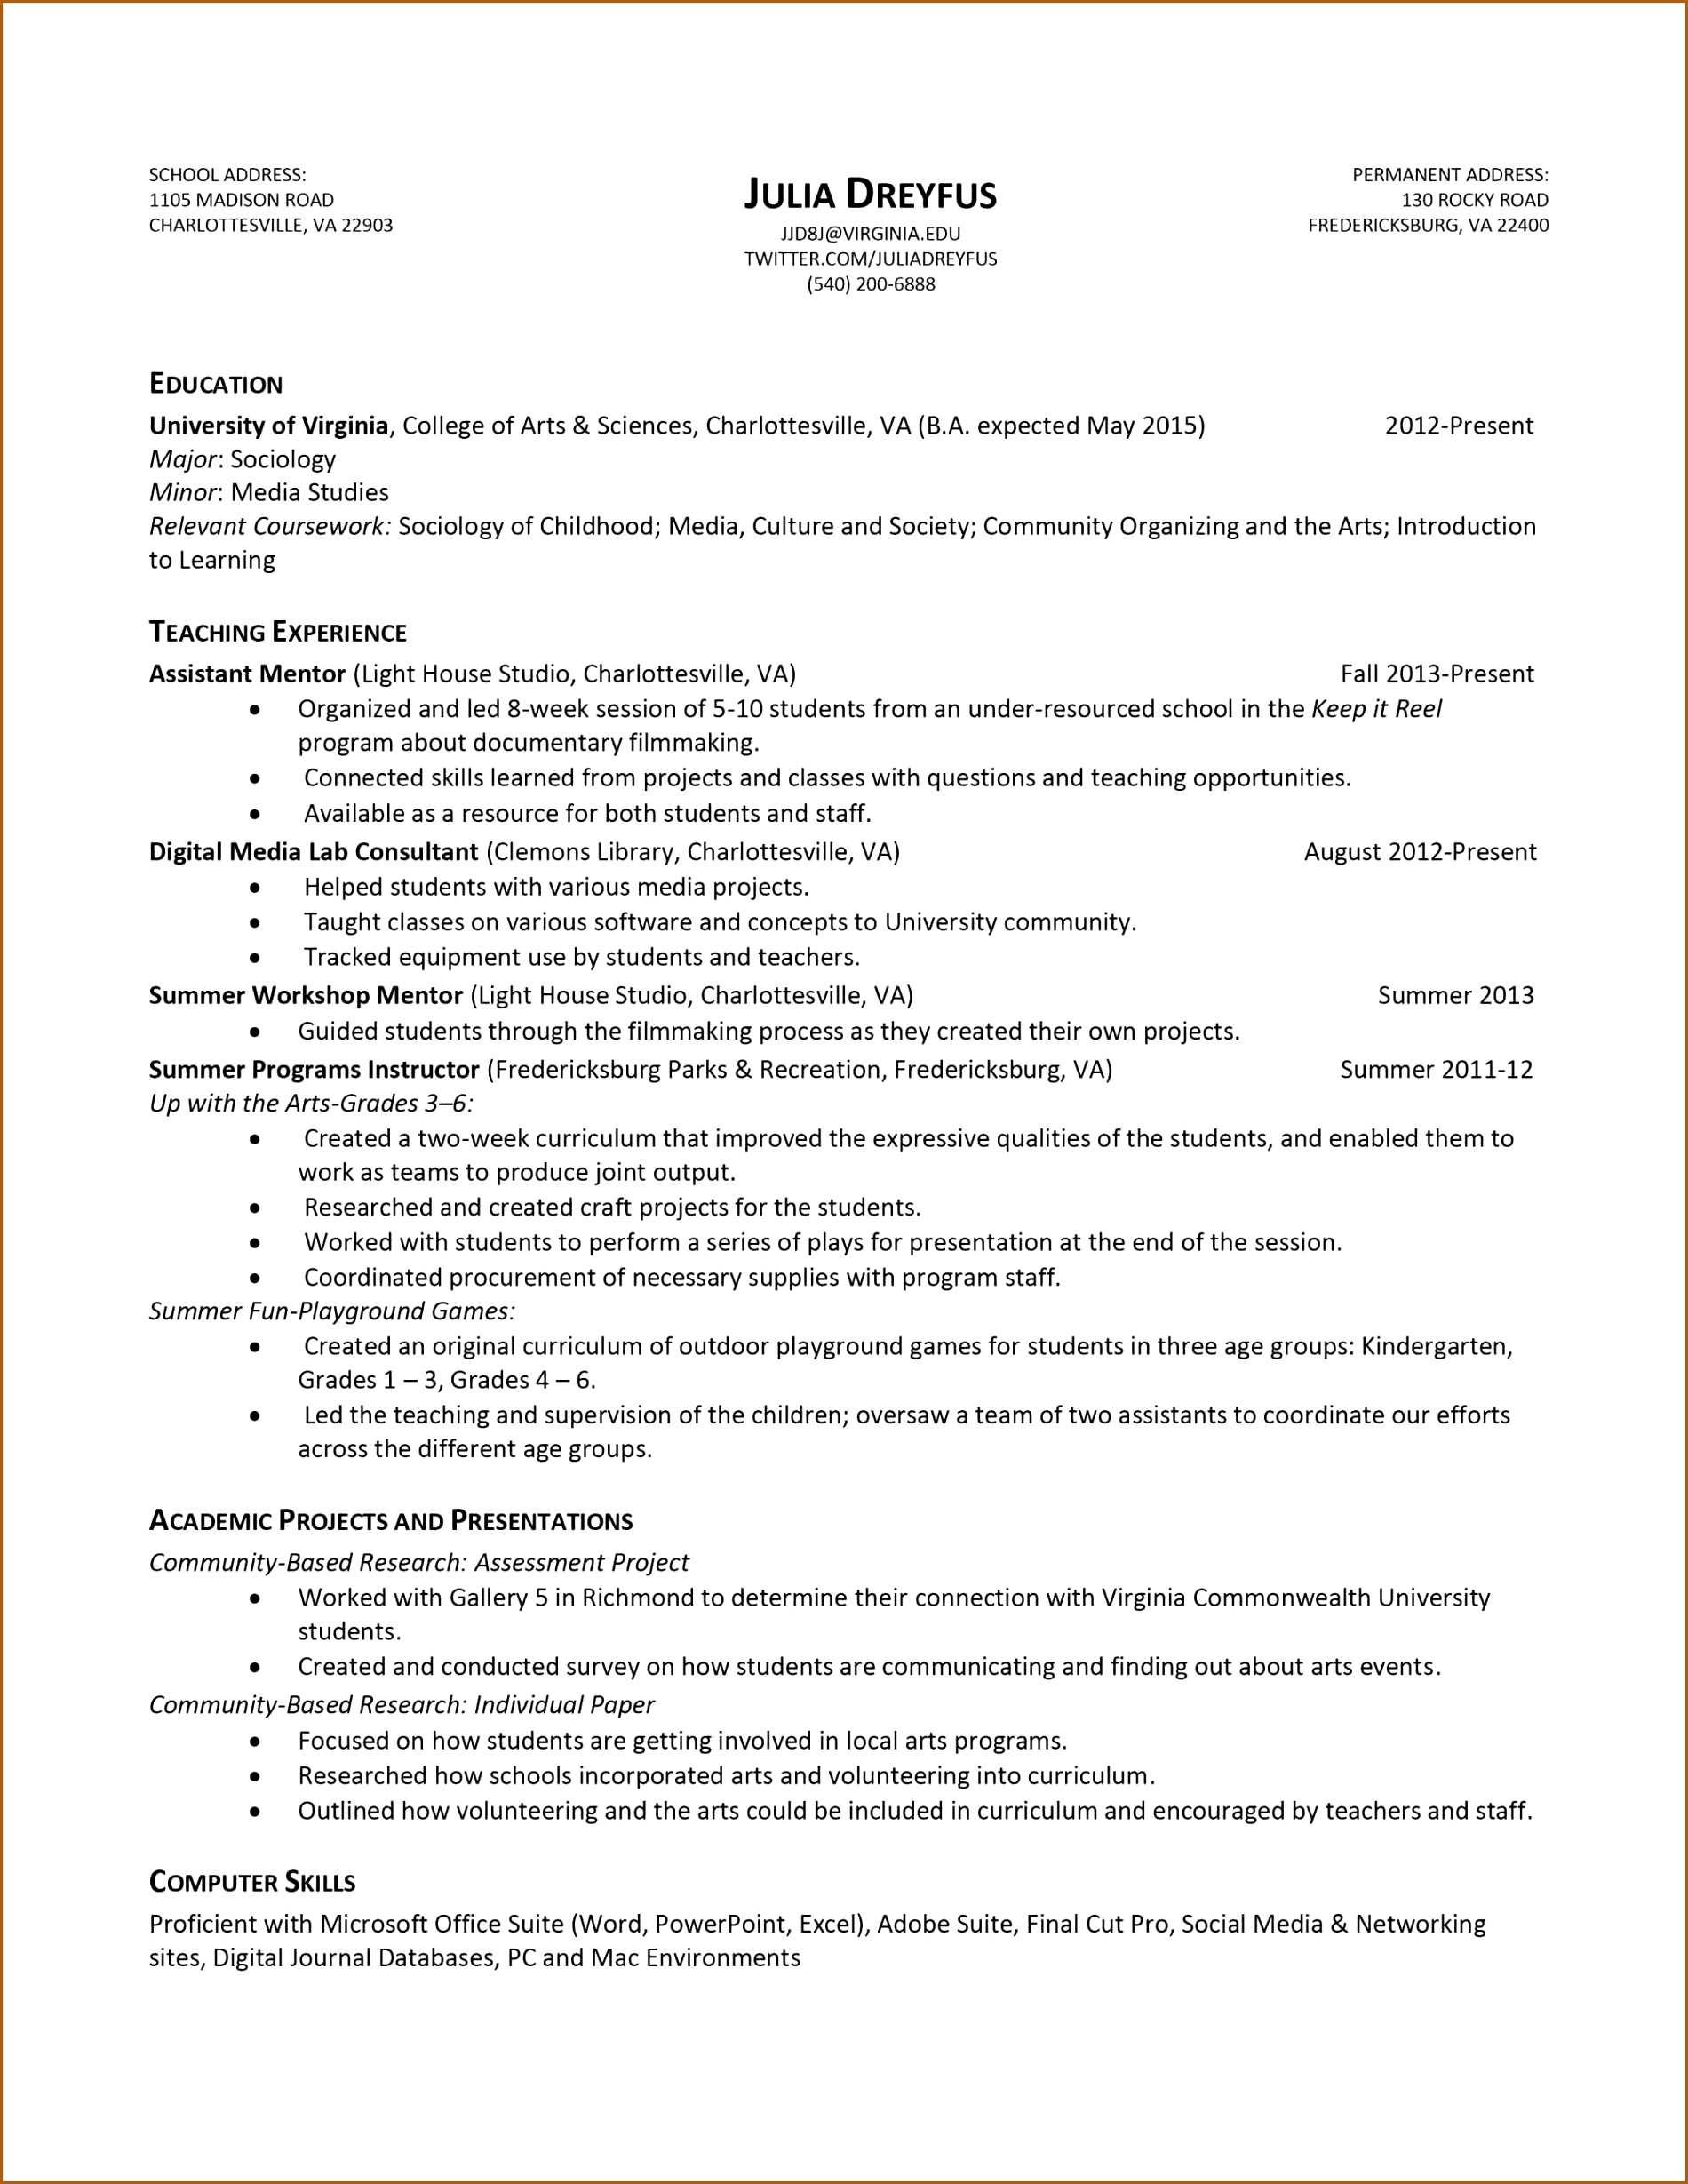 temple university resume template Collection-Temple University Lebenslauf format Skfxph Cv Resume format Elegant Cv Resume Builder Lovely Student Resume 19-b